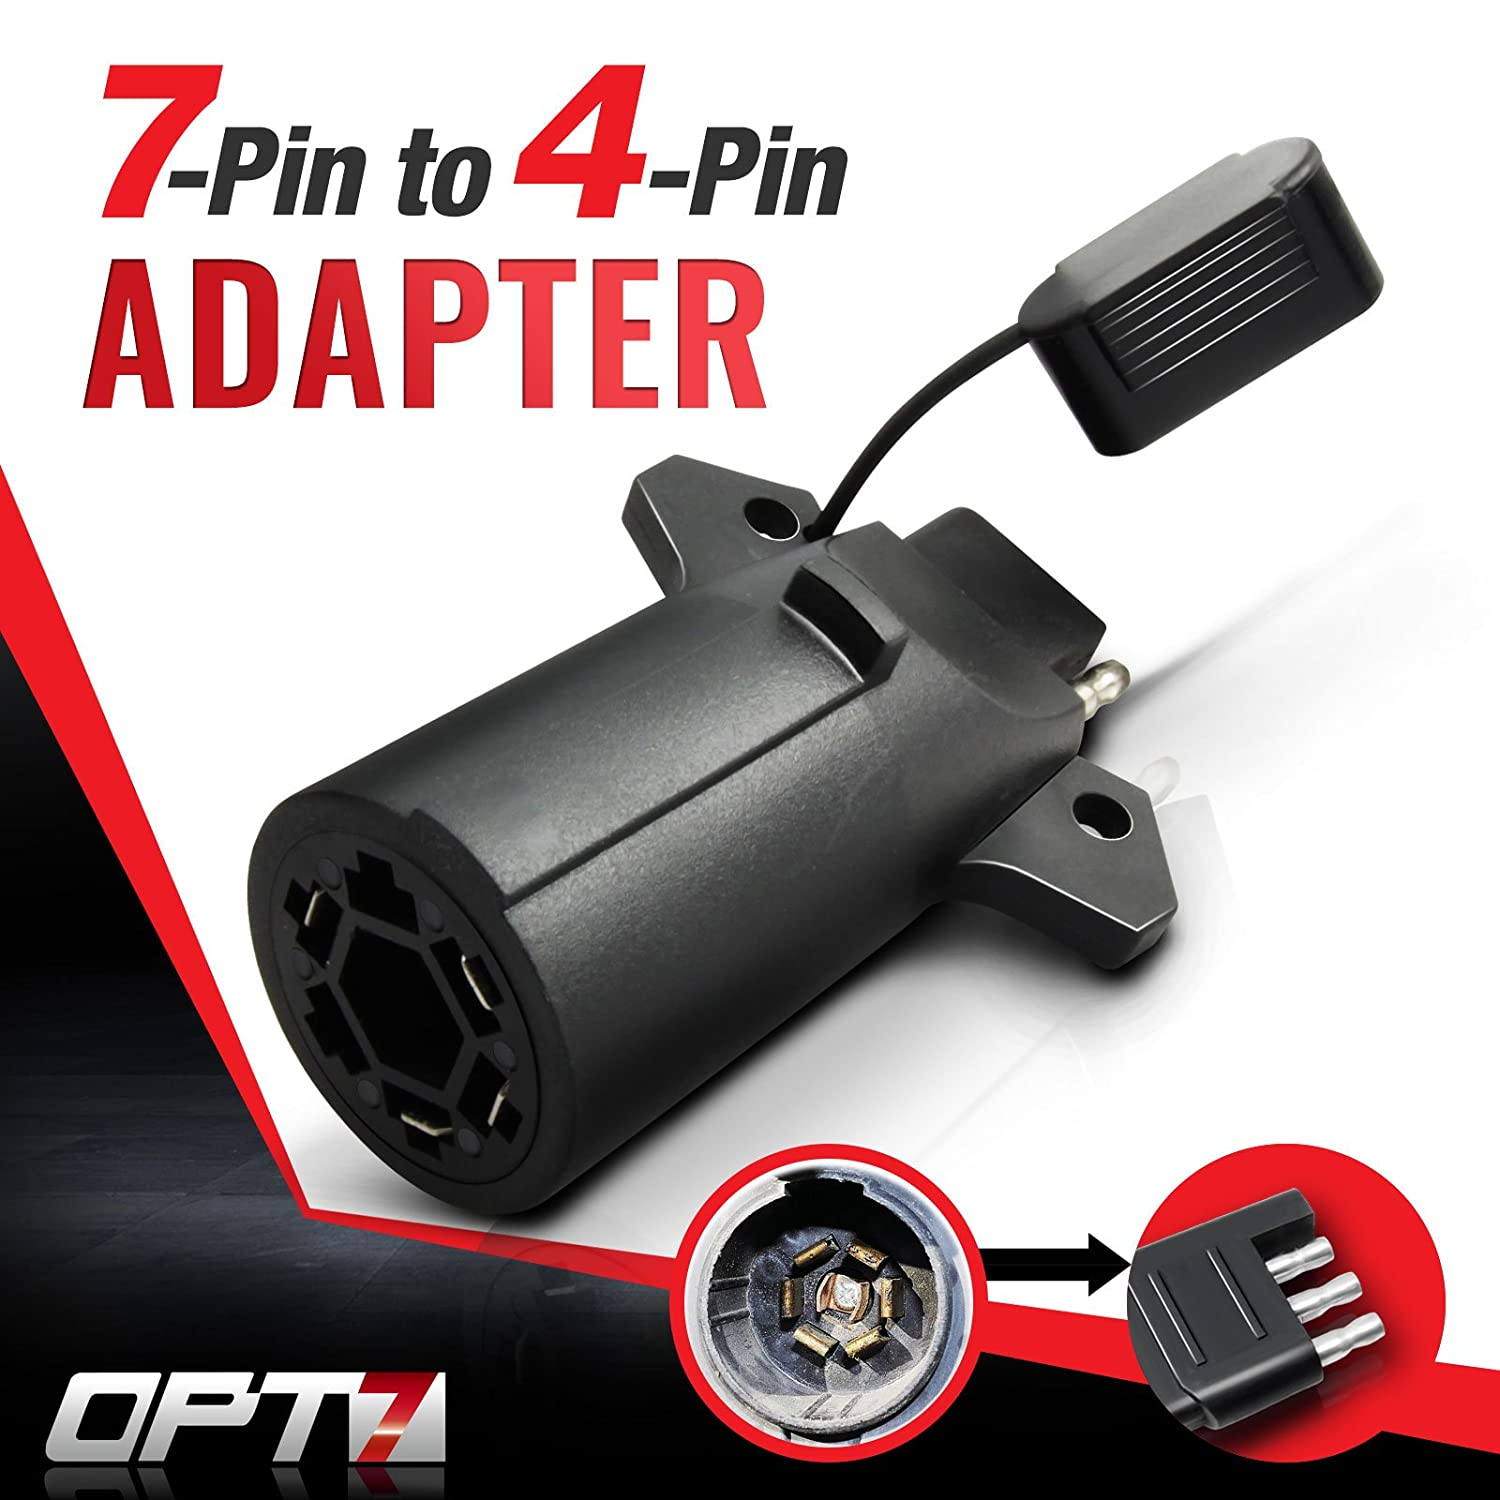 amazon com opt7 weatherproof 7 way flat blade to 4 way pin adapter rh  amazon com